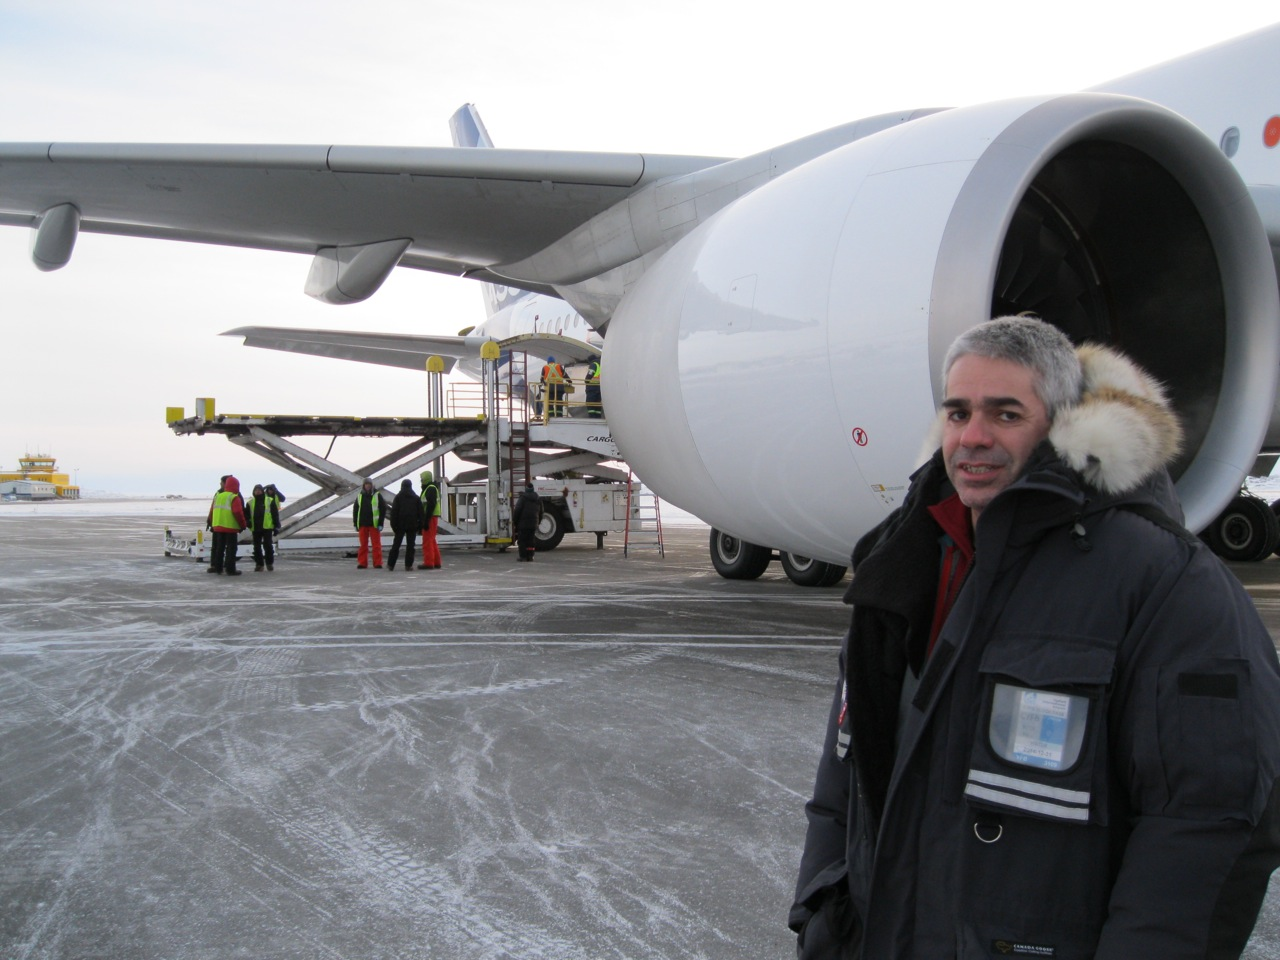 After more than two days of cold-weather testing on Airbus's newest commercial passenger plane, the A350-900, at Iqaluit Airport, flight operations manager Pedro Dias called on the 48-member test flight crew to pack it in Jan. 26, when temperatures hit a mild -18 C. The crew's next stop is Qatar in a week's time, where they will take the plane through hot-weather tests. (PHOTO BY PETER VARGA)